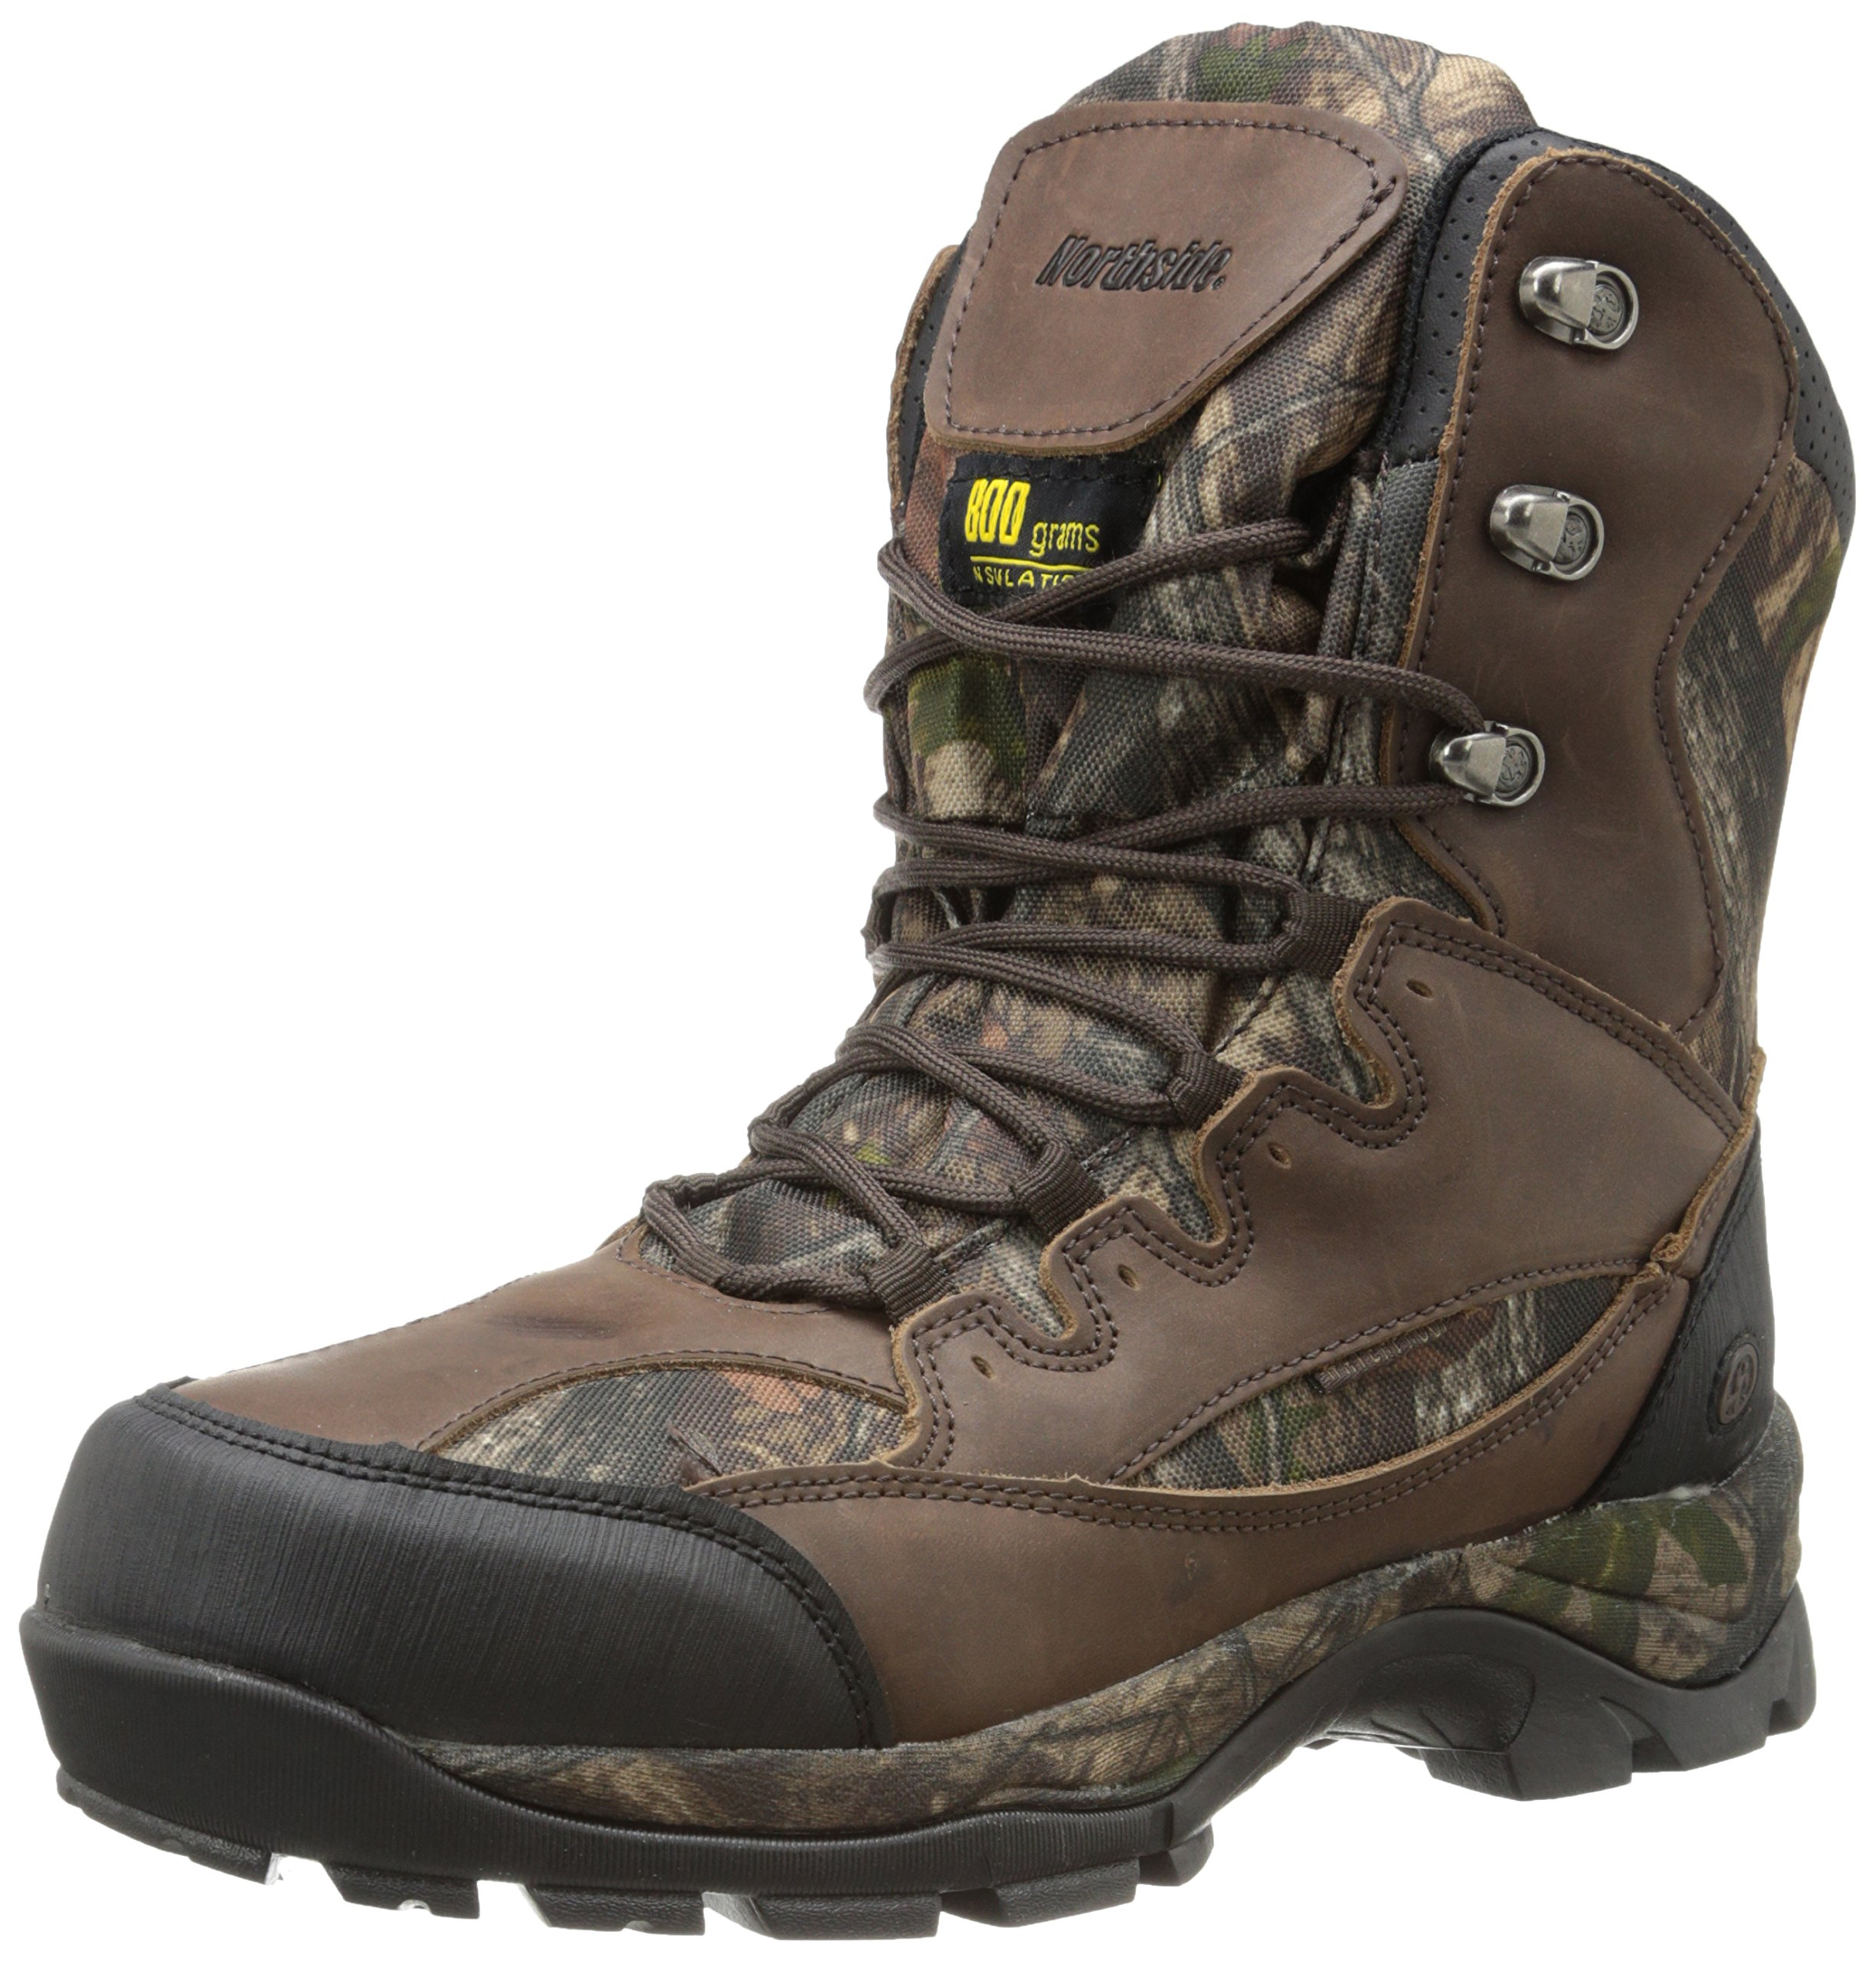 Northside Men's Renegade 800 Hunting Boot,Brown Camo,13 M US